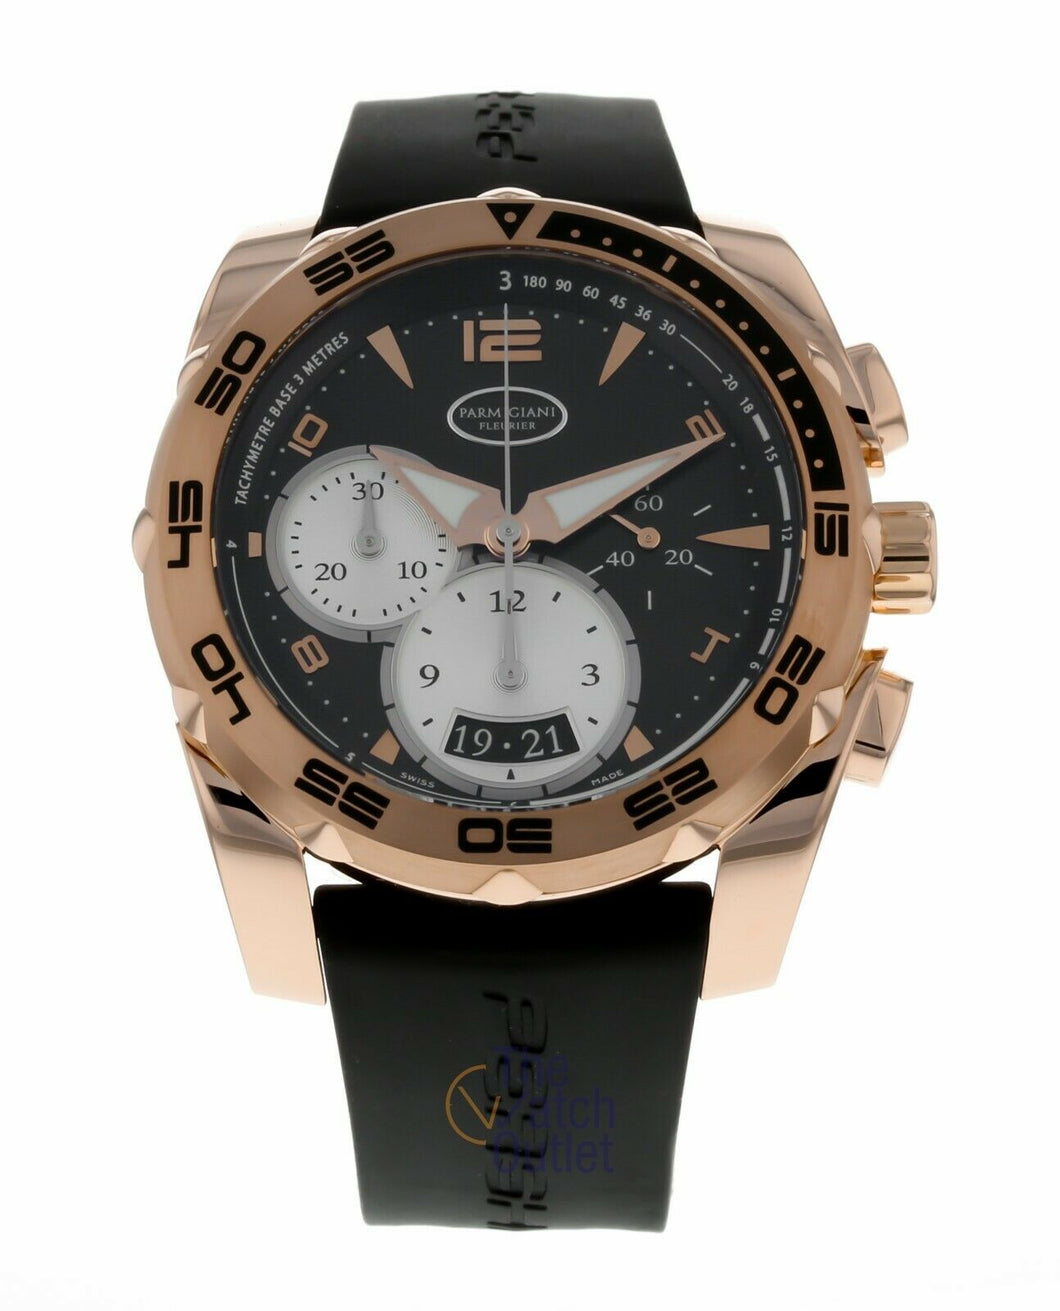 Parmigiani Fleurier Pershing 002 Chronograph 18k Rose Gold Men's Watch PFC528